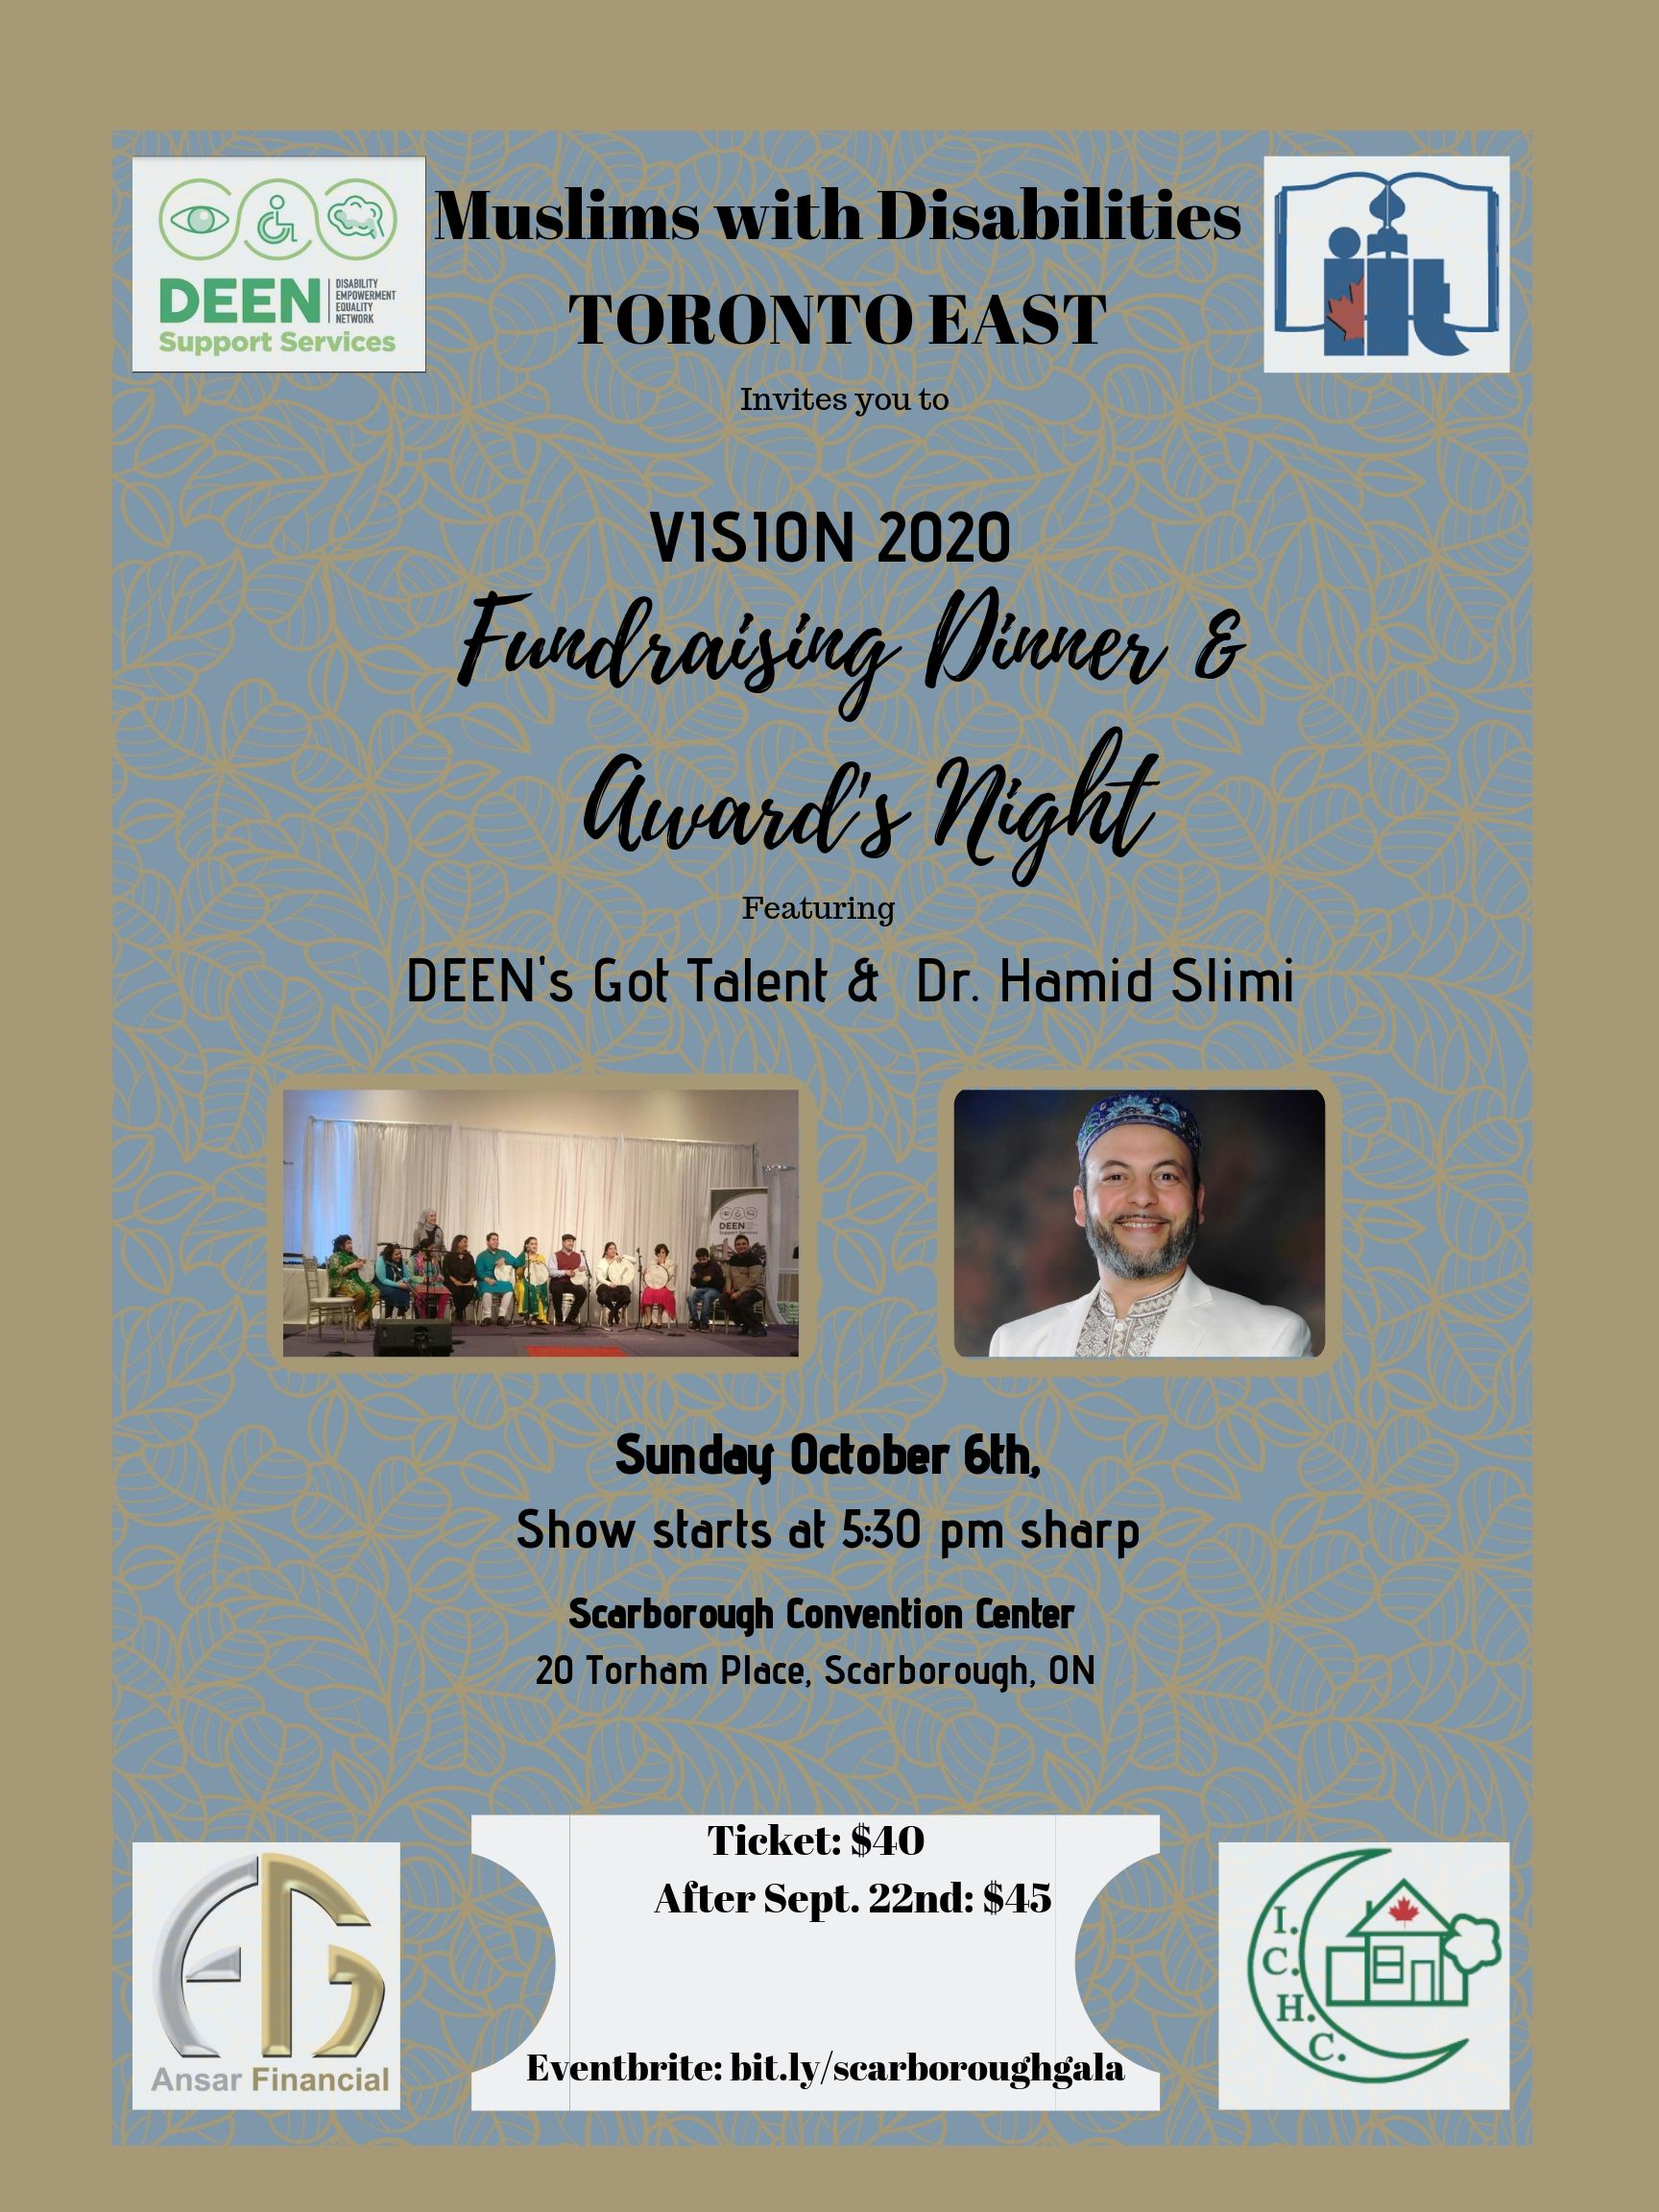 Muslims with disabilities, Toronto East invites you to Vision 2020 Fundraising Dinner and Award's Night featuring DEEN's Got Talent and Dr. Hamid Slimi. On Sunday October 6th. Show starts at 5:30 pm sharp. Scarborough Convention Center, 20 Torham Place, Scarborough, ON Earlybird tickets are $40, after Sept 22nd, tickets will be $45.